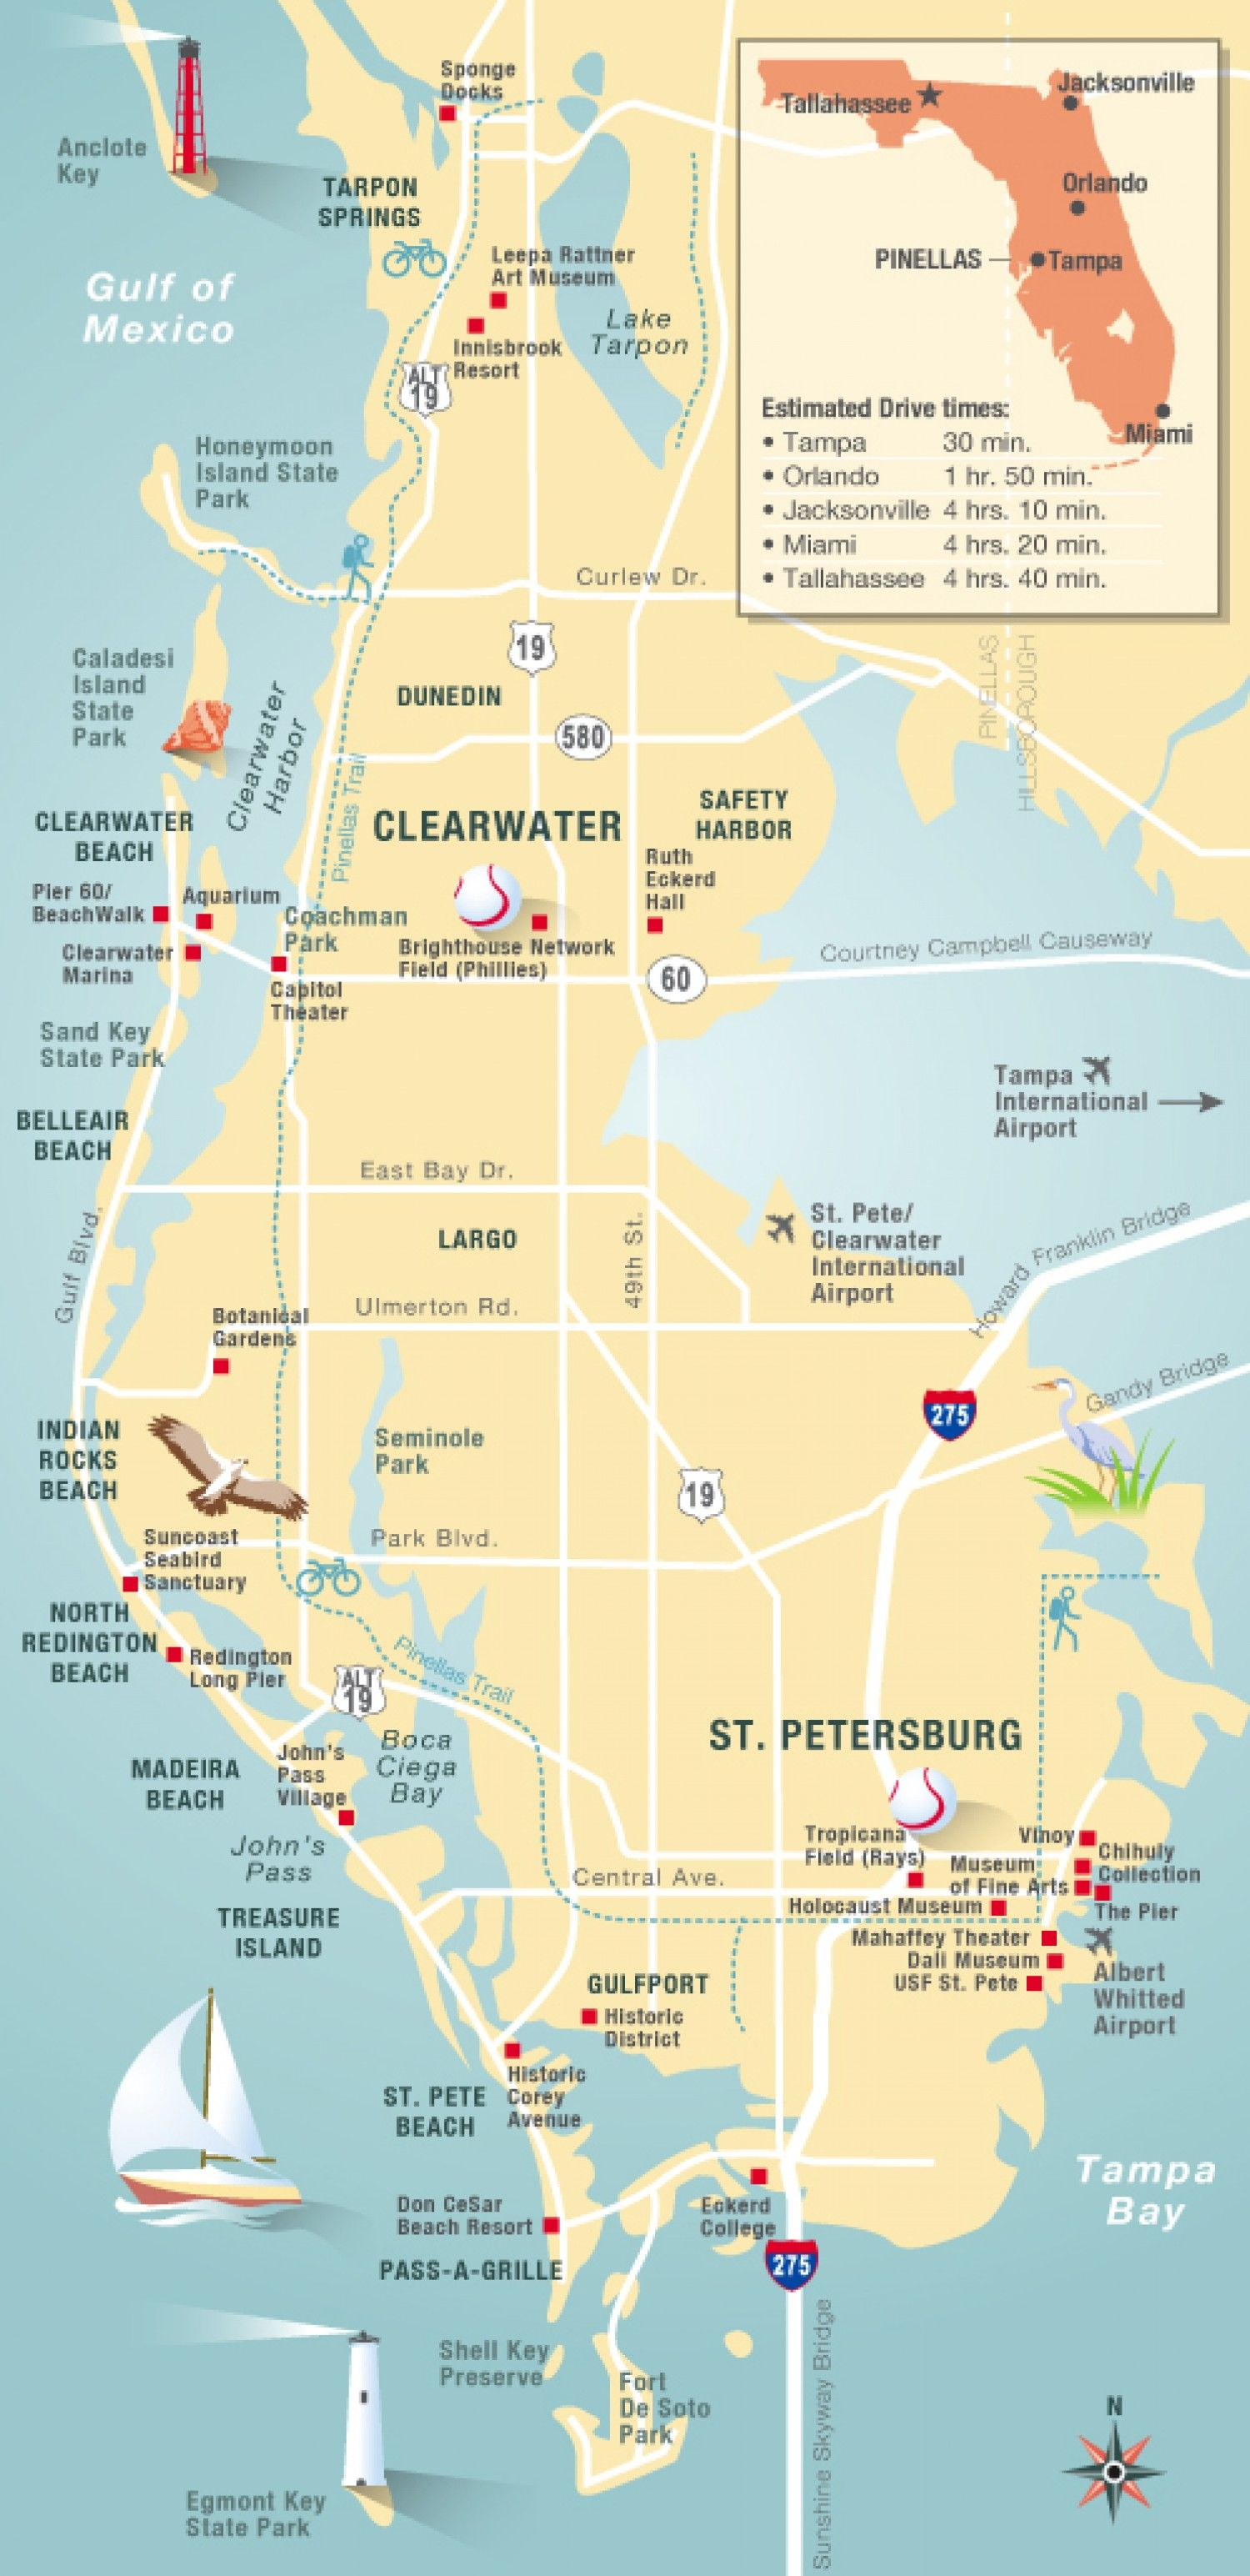 Pinellas County Map Clearwater, St Petersburg, Fl | Love It - Indian Beach Florida Map